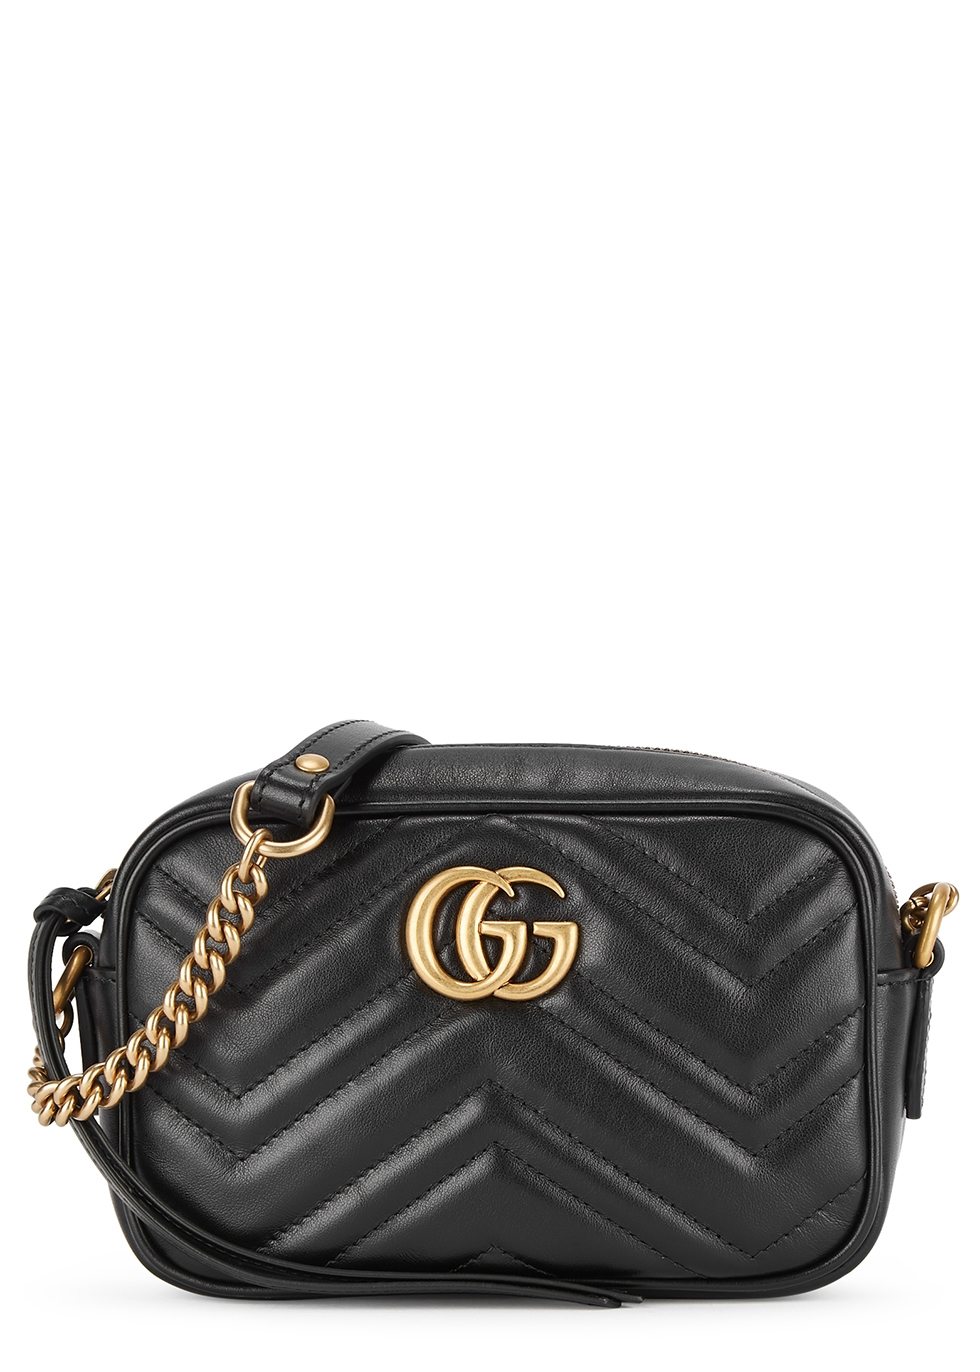 d323f95c76f Gucci Handbags - Harvey Nichols